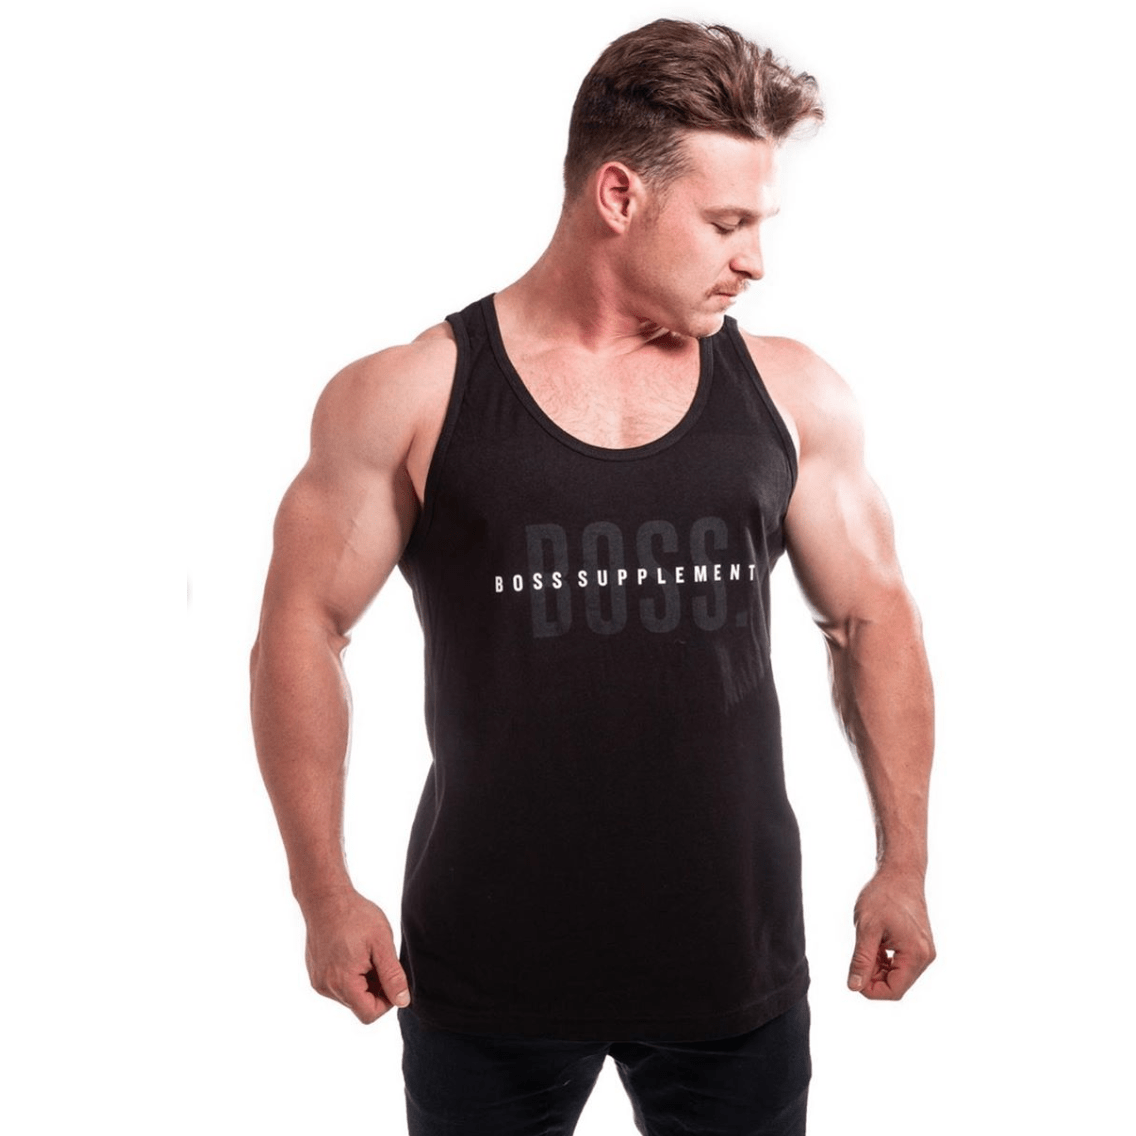 BOSS Supplements Men's Tank